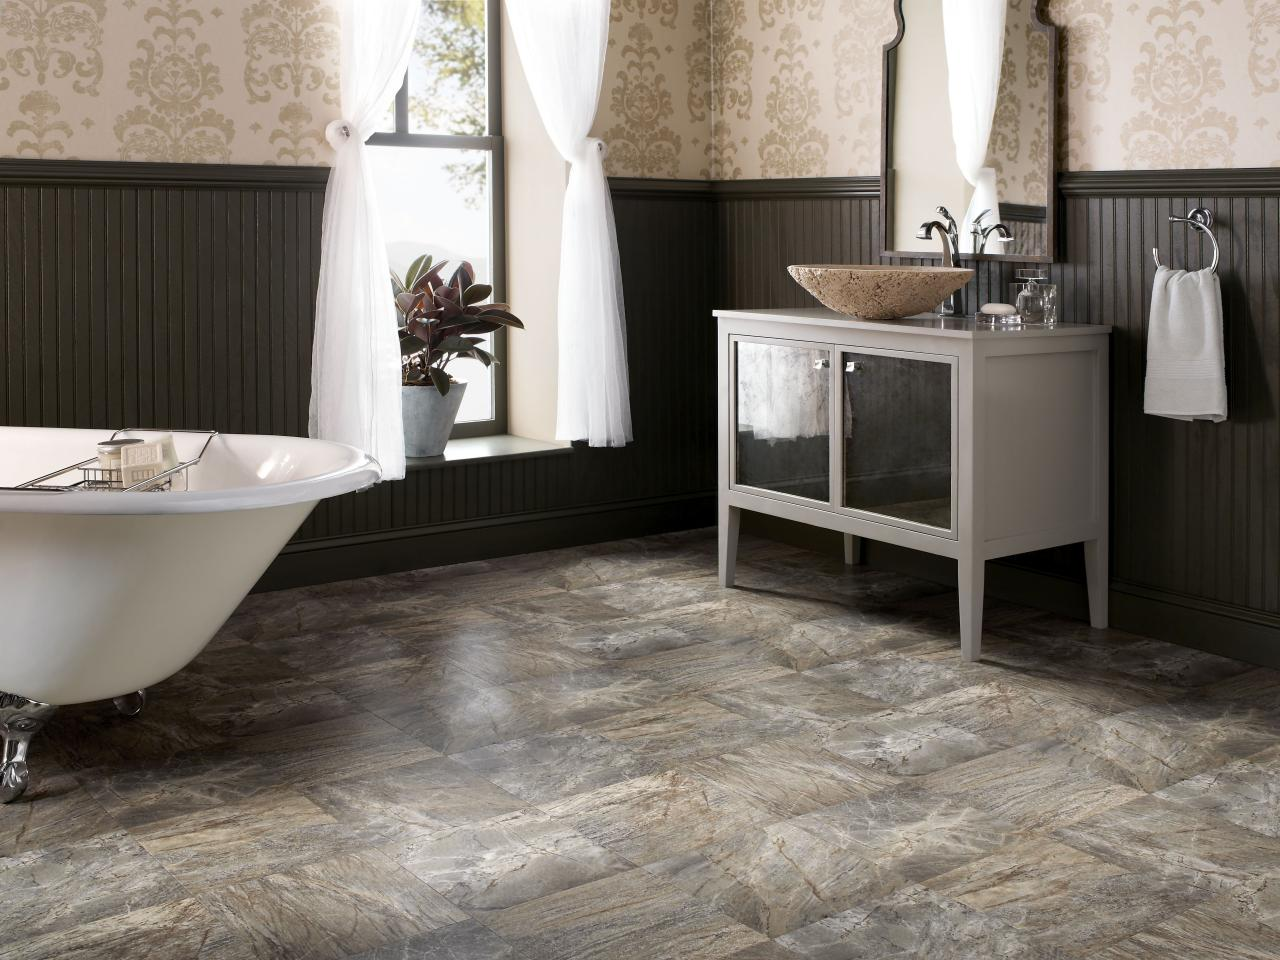 vinyl-tile-bathroom-flooring-marble-pattern-mannington-mills